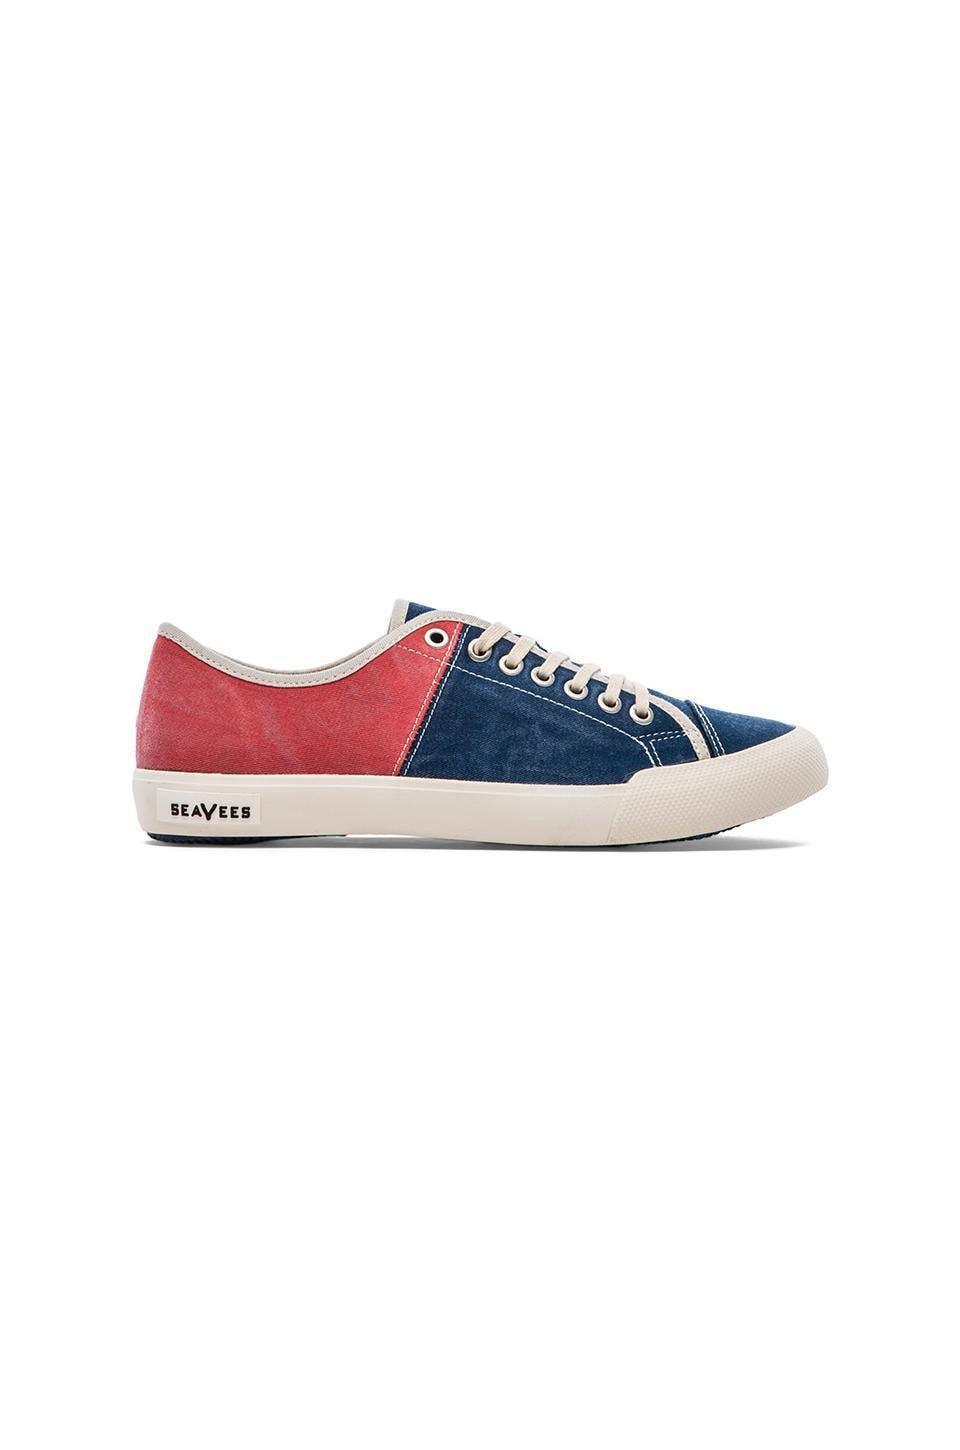 SeaVees x Katin USA 08/61 Army Issue Sneaker Low in Deep Sea Blue/Coral Red